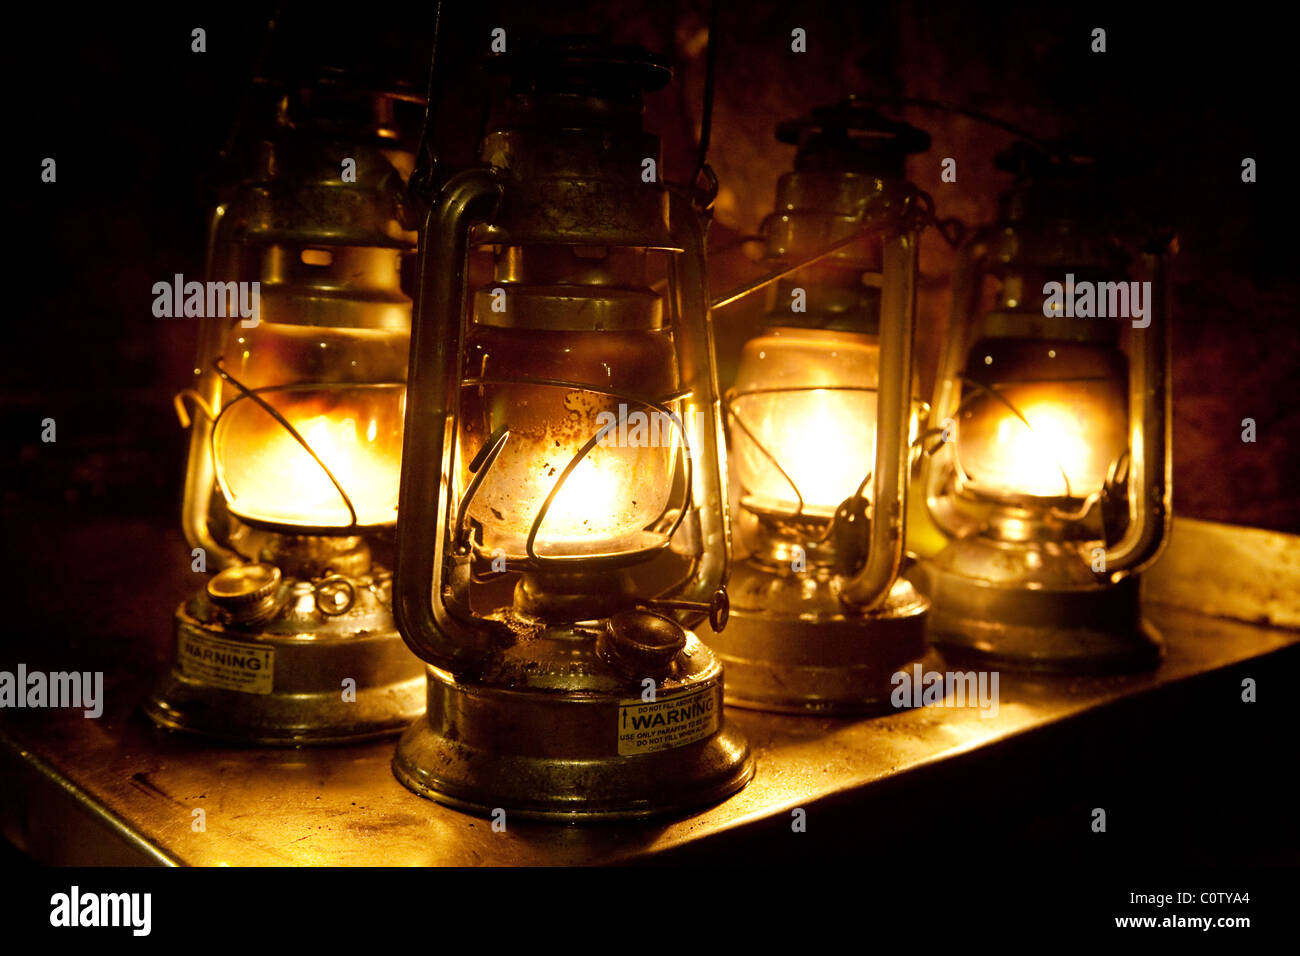 Old fashioned oil lamps at Chislehurst Caves, Chislehurst, Kent, UK - Stock Image